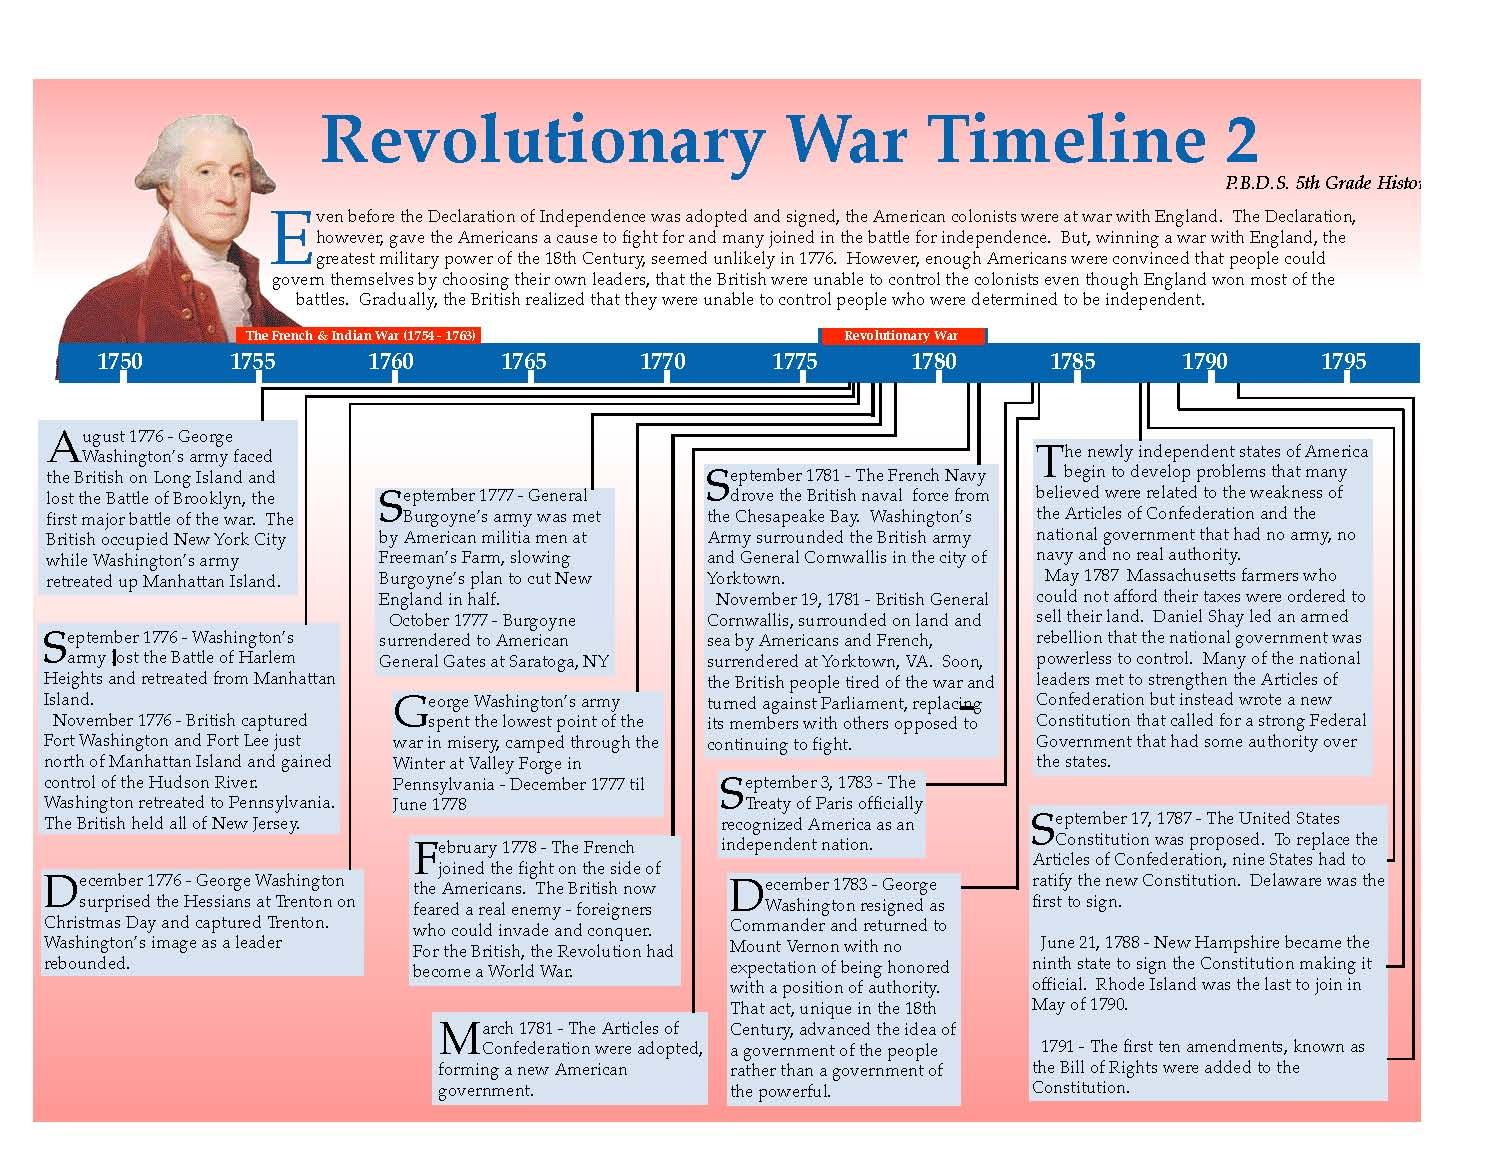 Revolutionary War Timeline Page 2